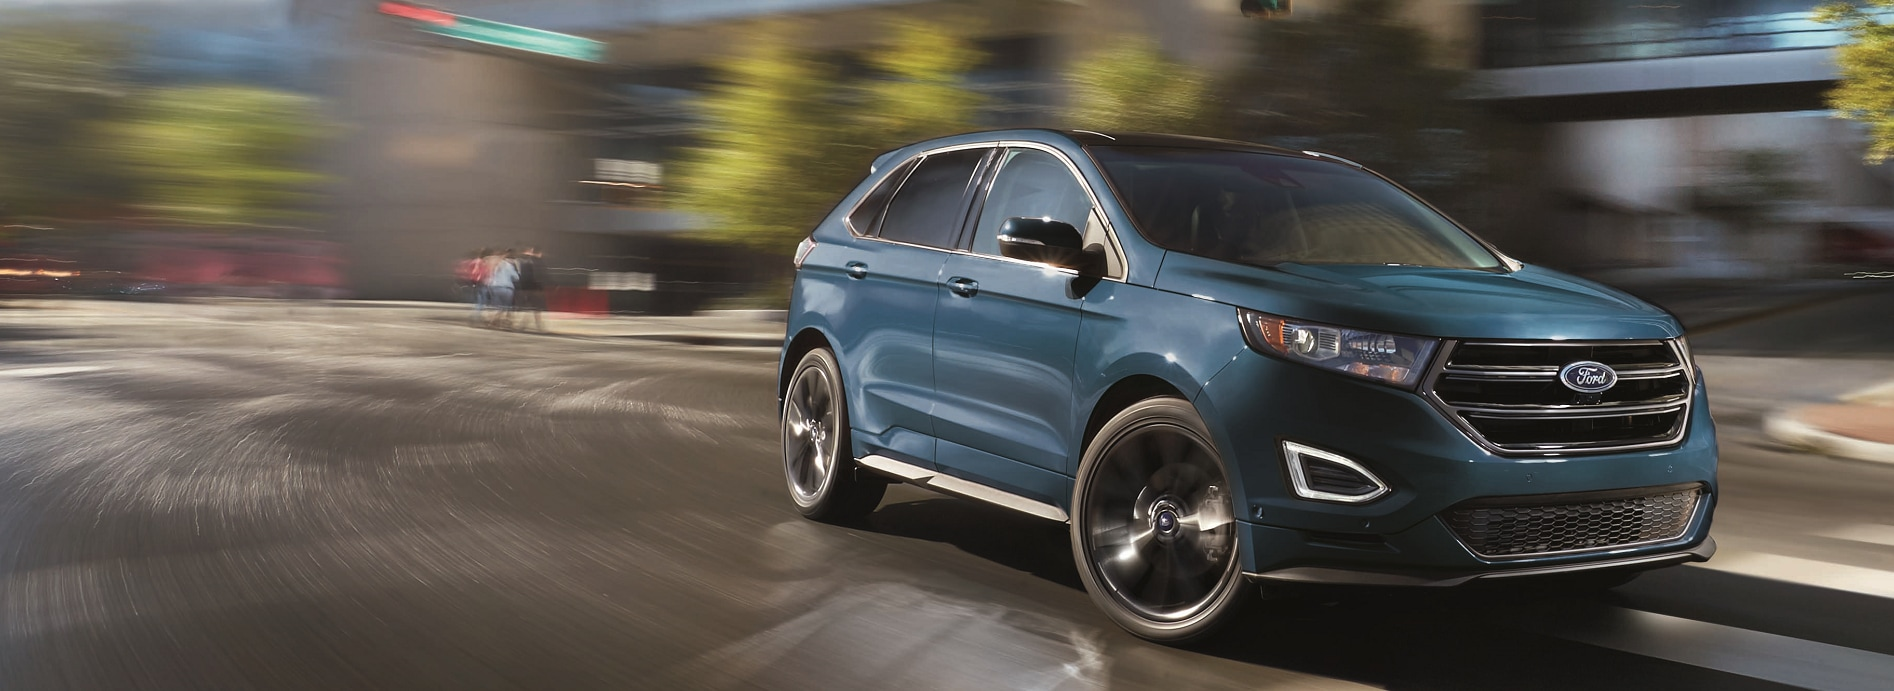 Nick Mayer Ford Compares The  Ford Edge To The Competition